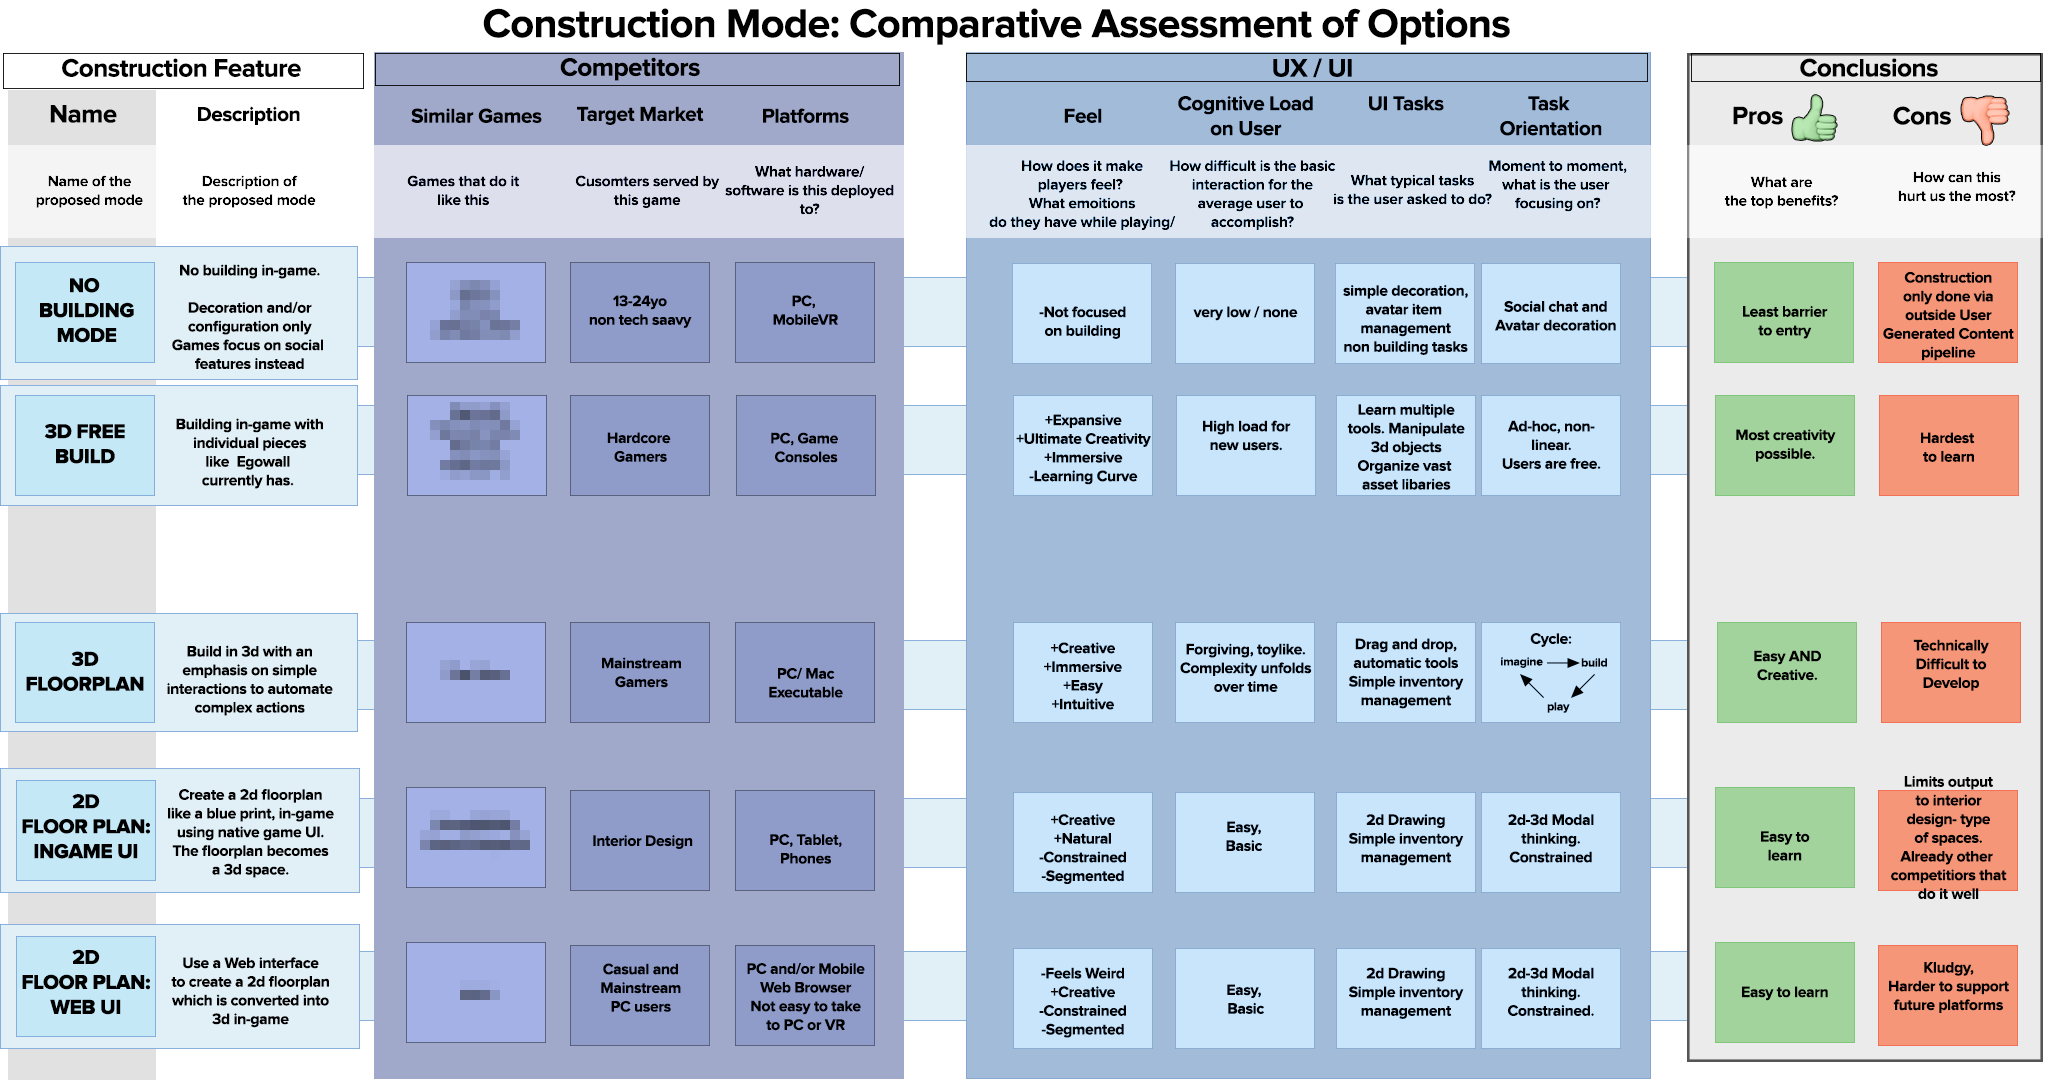 Image of Comparative Assessment of Market Leaders and Key Features